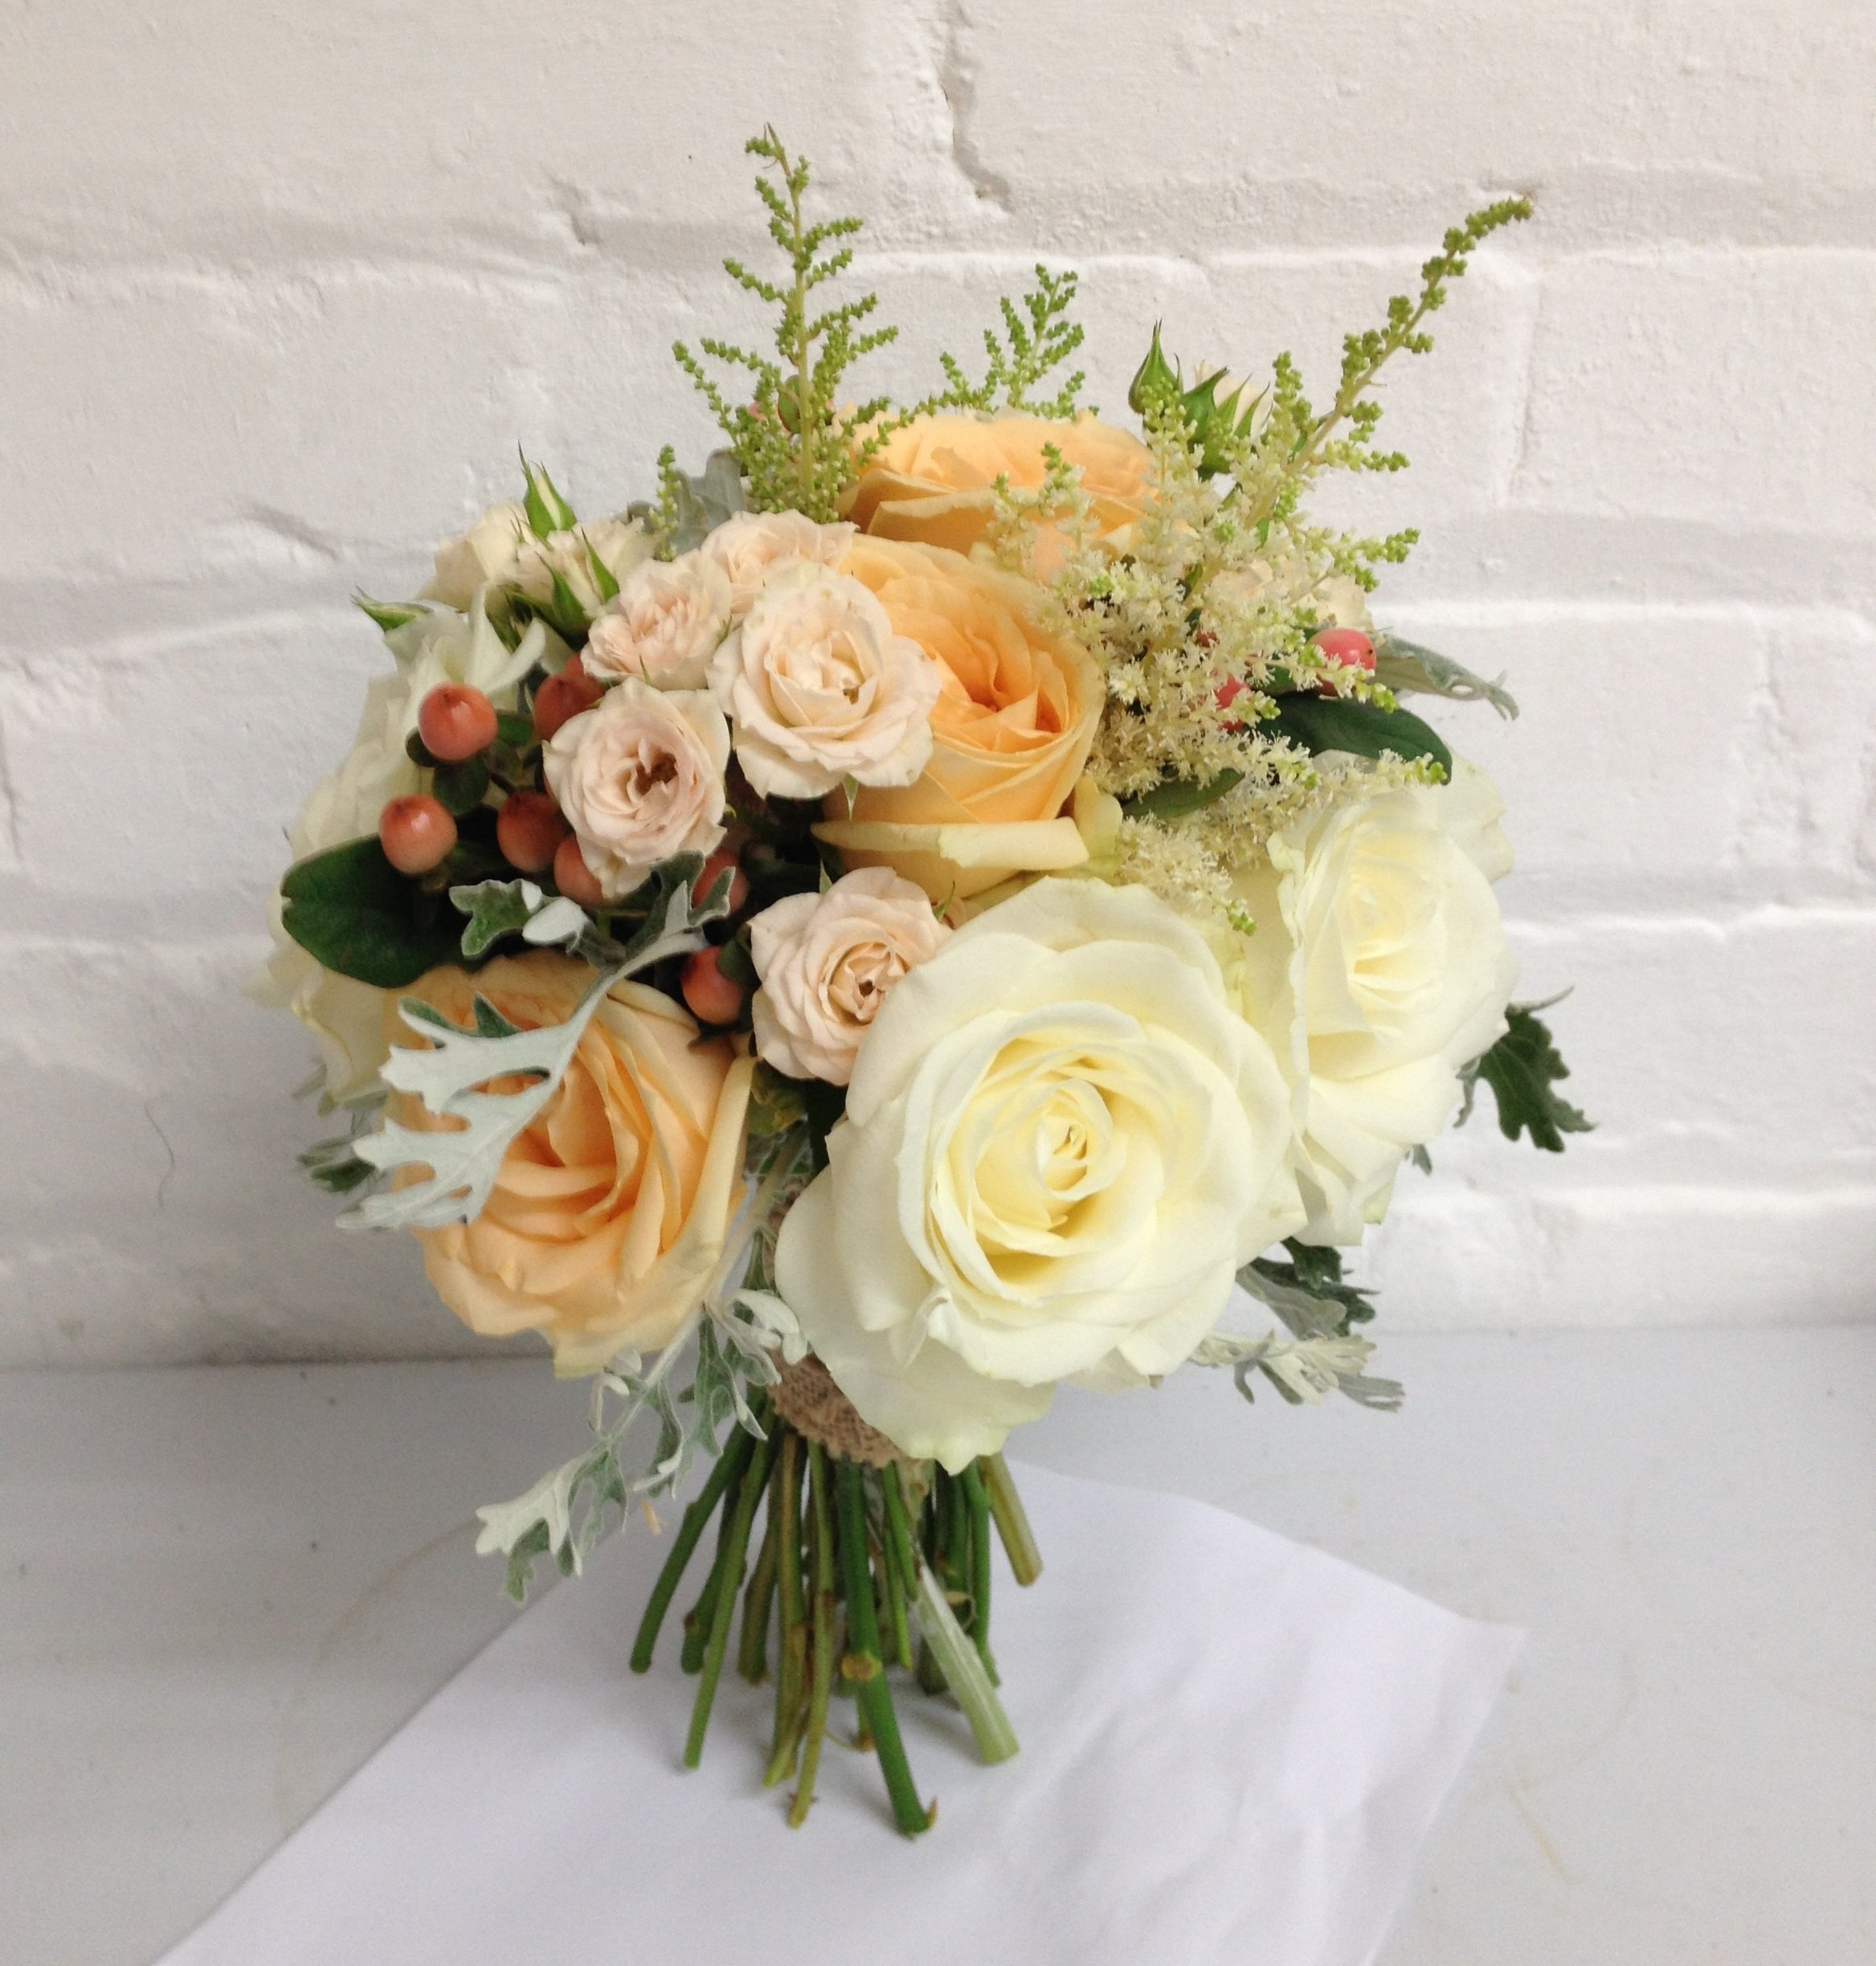 Peaches & Cream Wild Country Garden Bridal Bouquet with roses, spray roses, astilbe, hypernicum berries & grey senicio leaves Side View